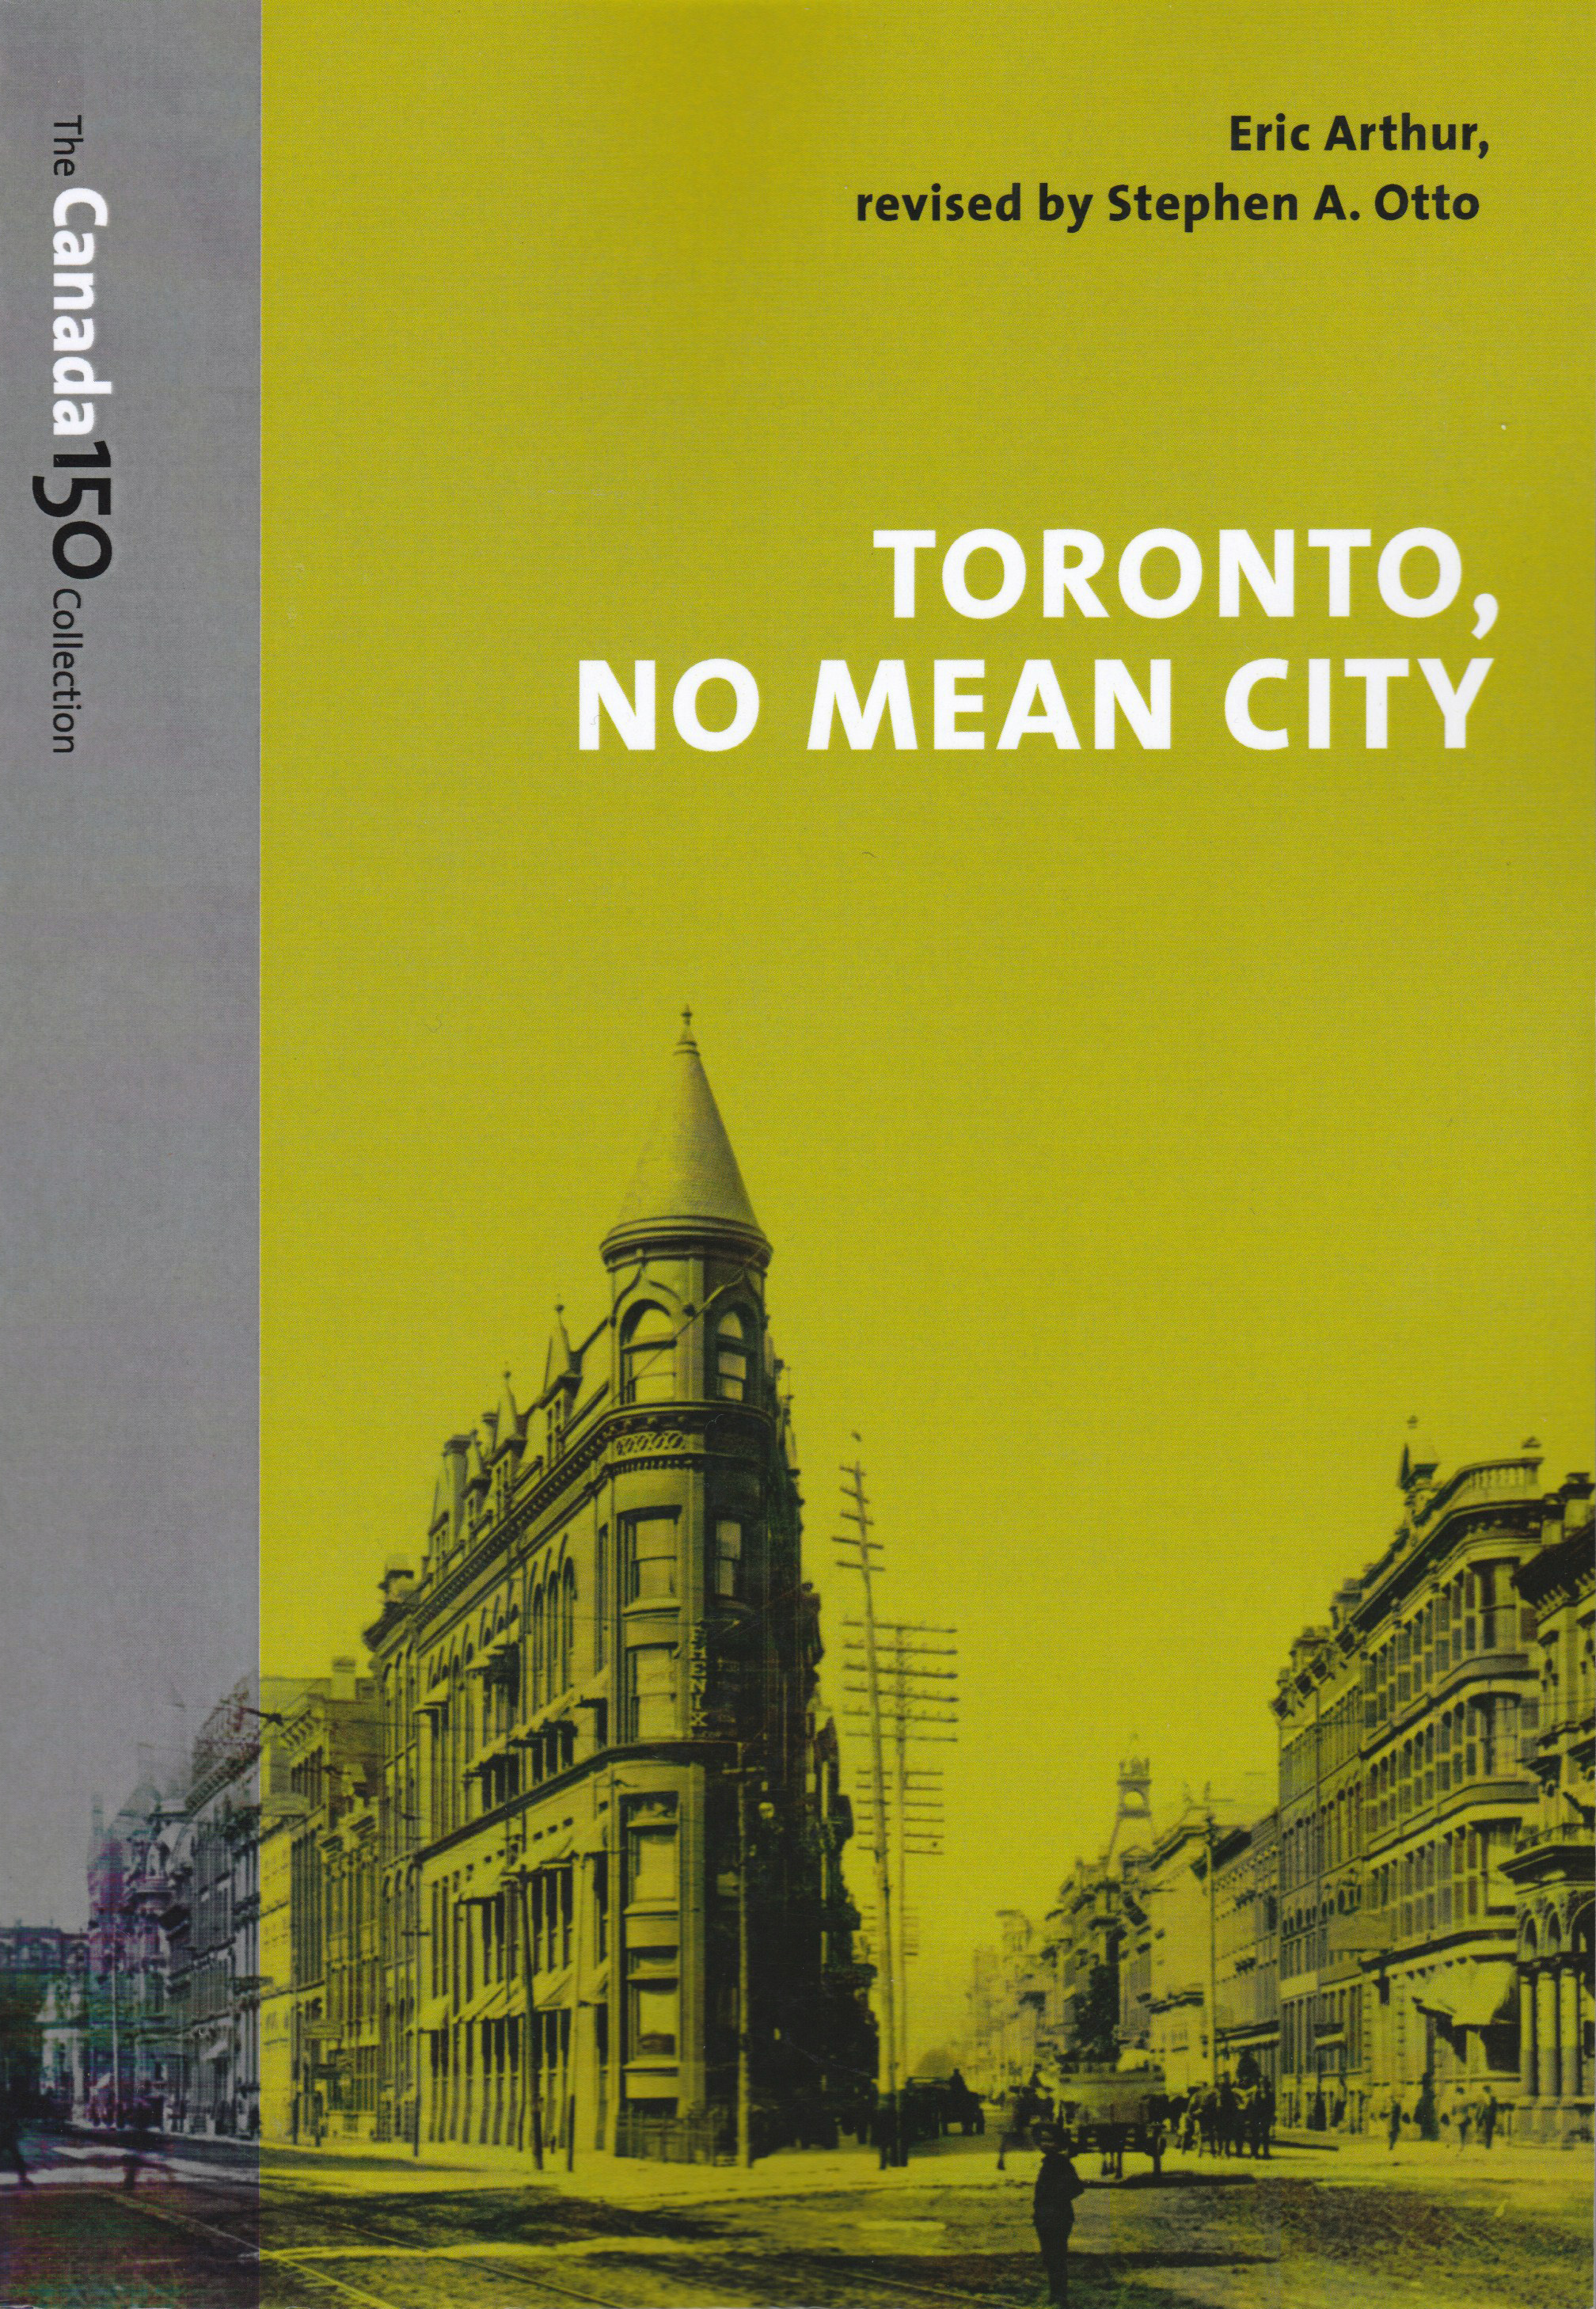 No Mean City cover